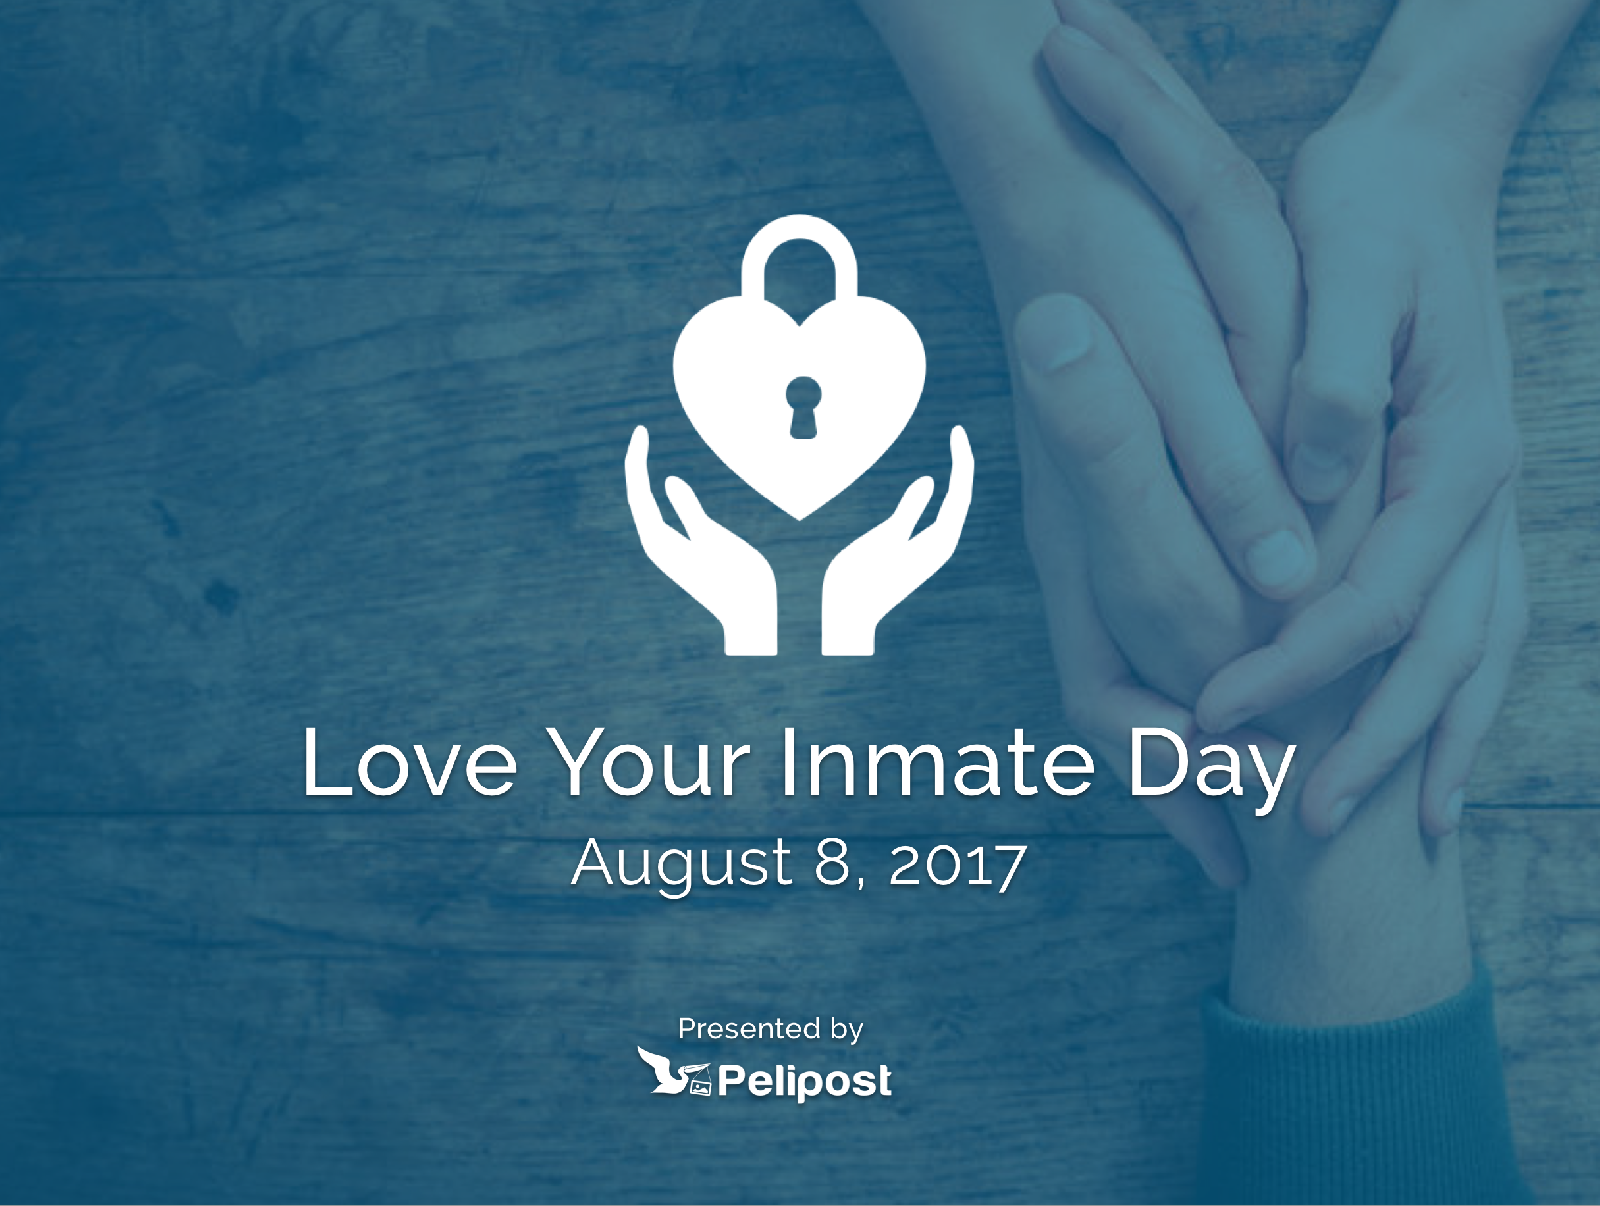 Love Your Inmate Day Presented By Pelipost